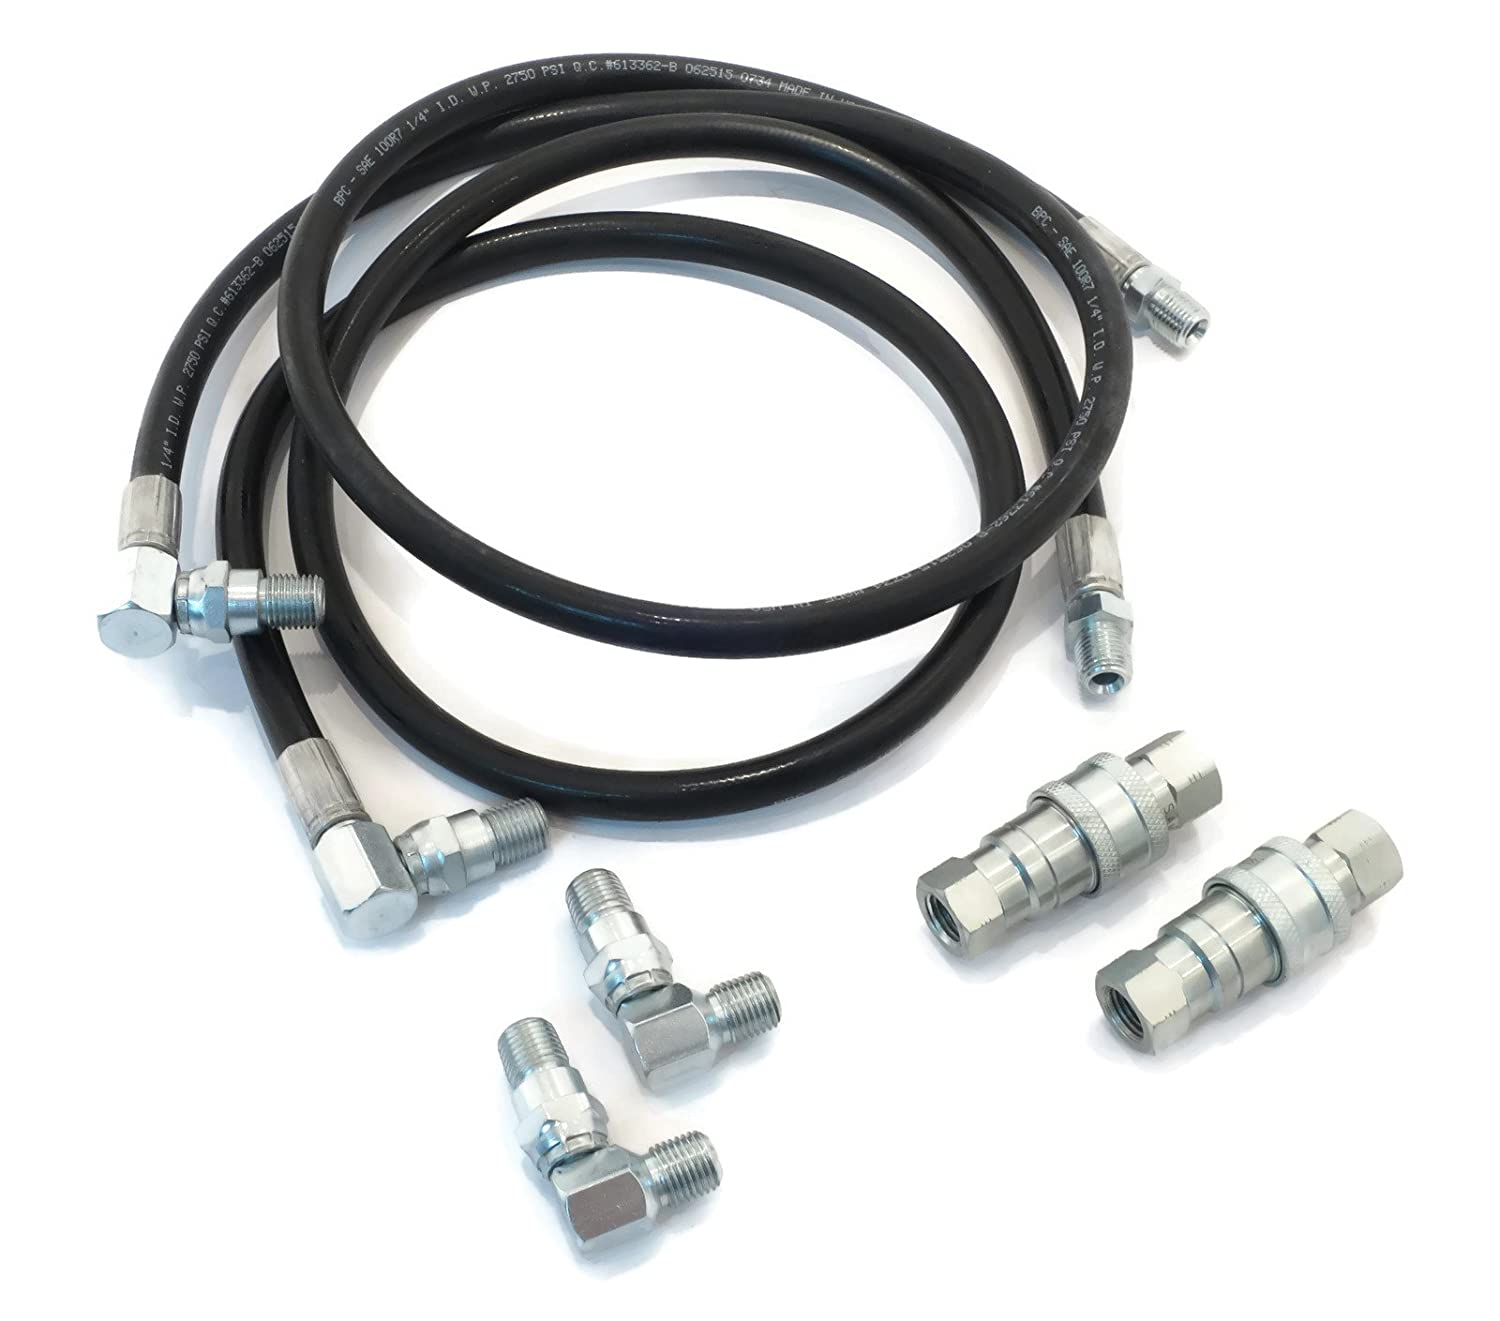 71t06UvIbIL._SL1500_ amazon com power angle hose & fittings replacement kit for e47  at creativeand.co